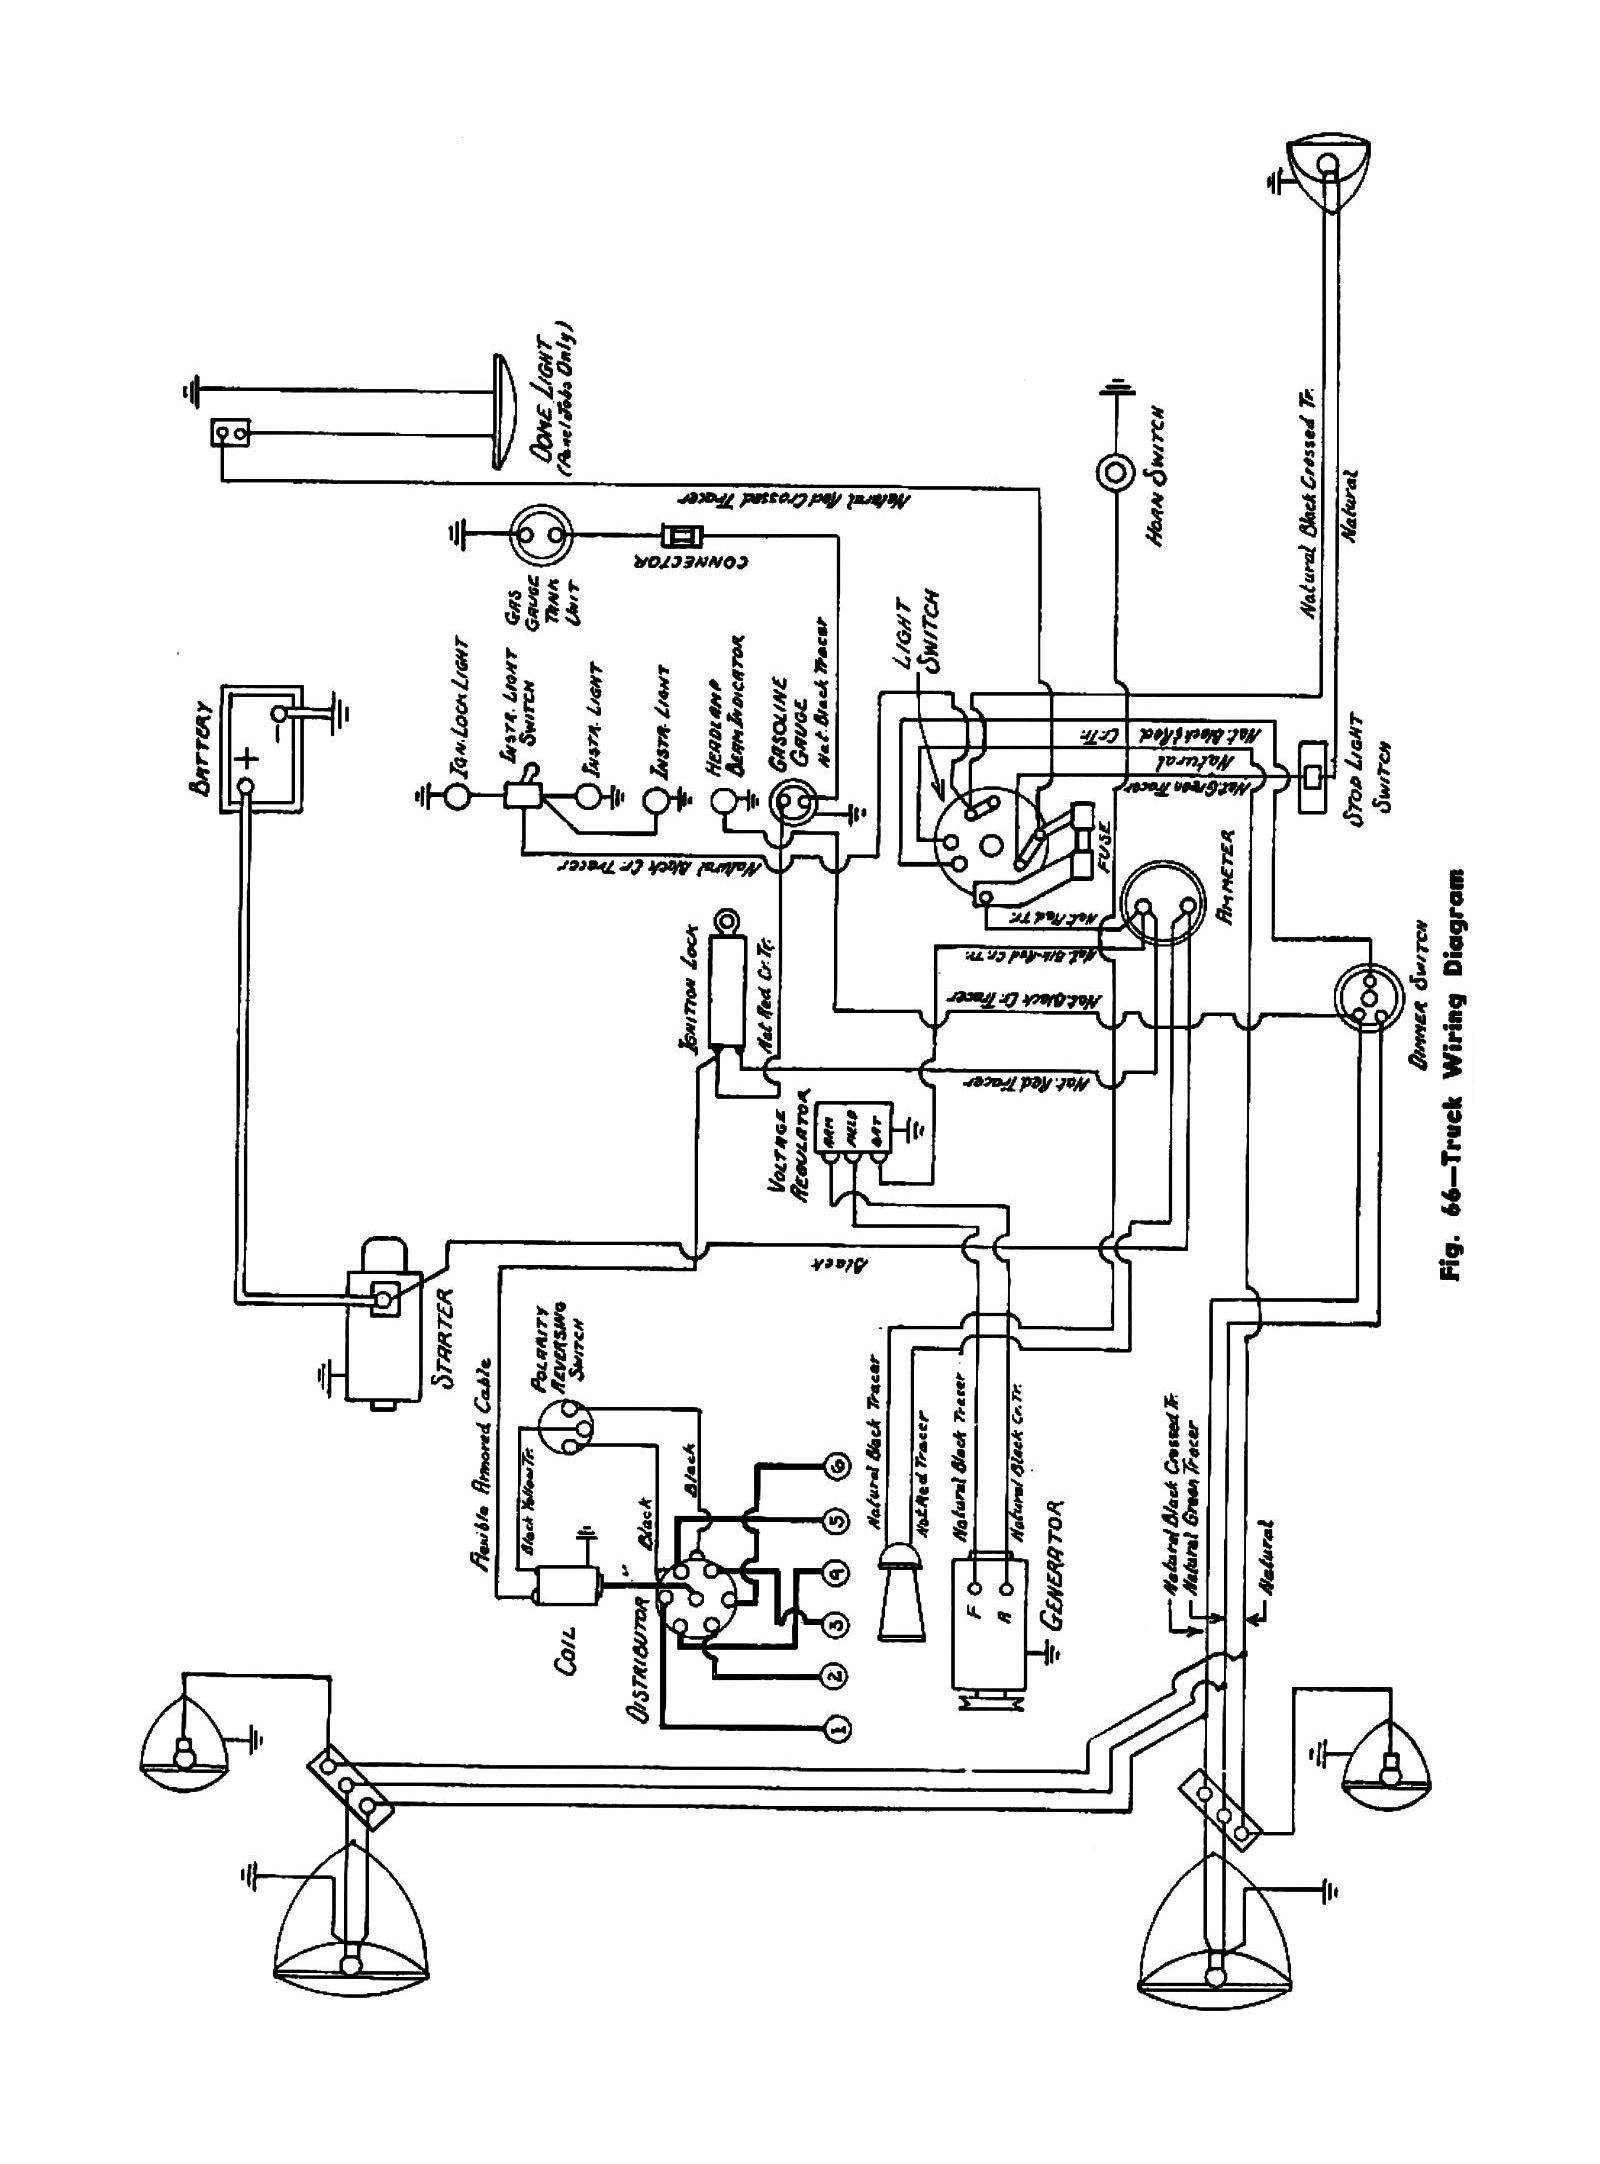 1978 Thunderbird Wiring Ammeter Reveolution Of Diagram Sunpro Voltmeter Chevy Diagrams Rh Oldcarmanualproject Com 8n Tach